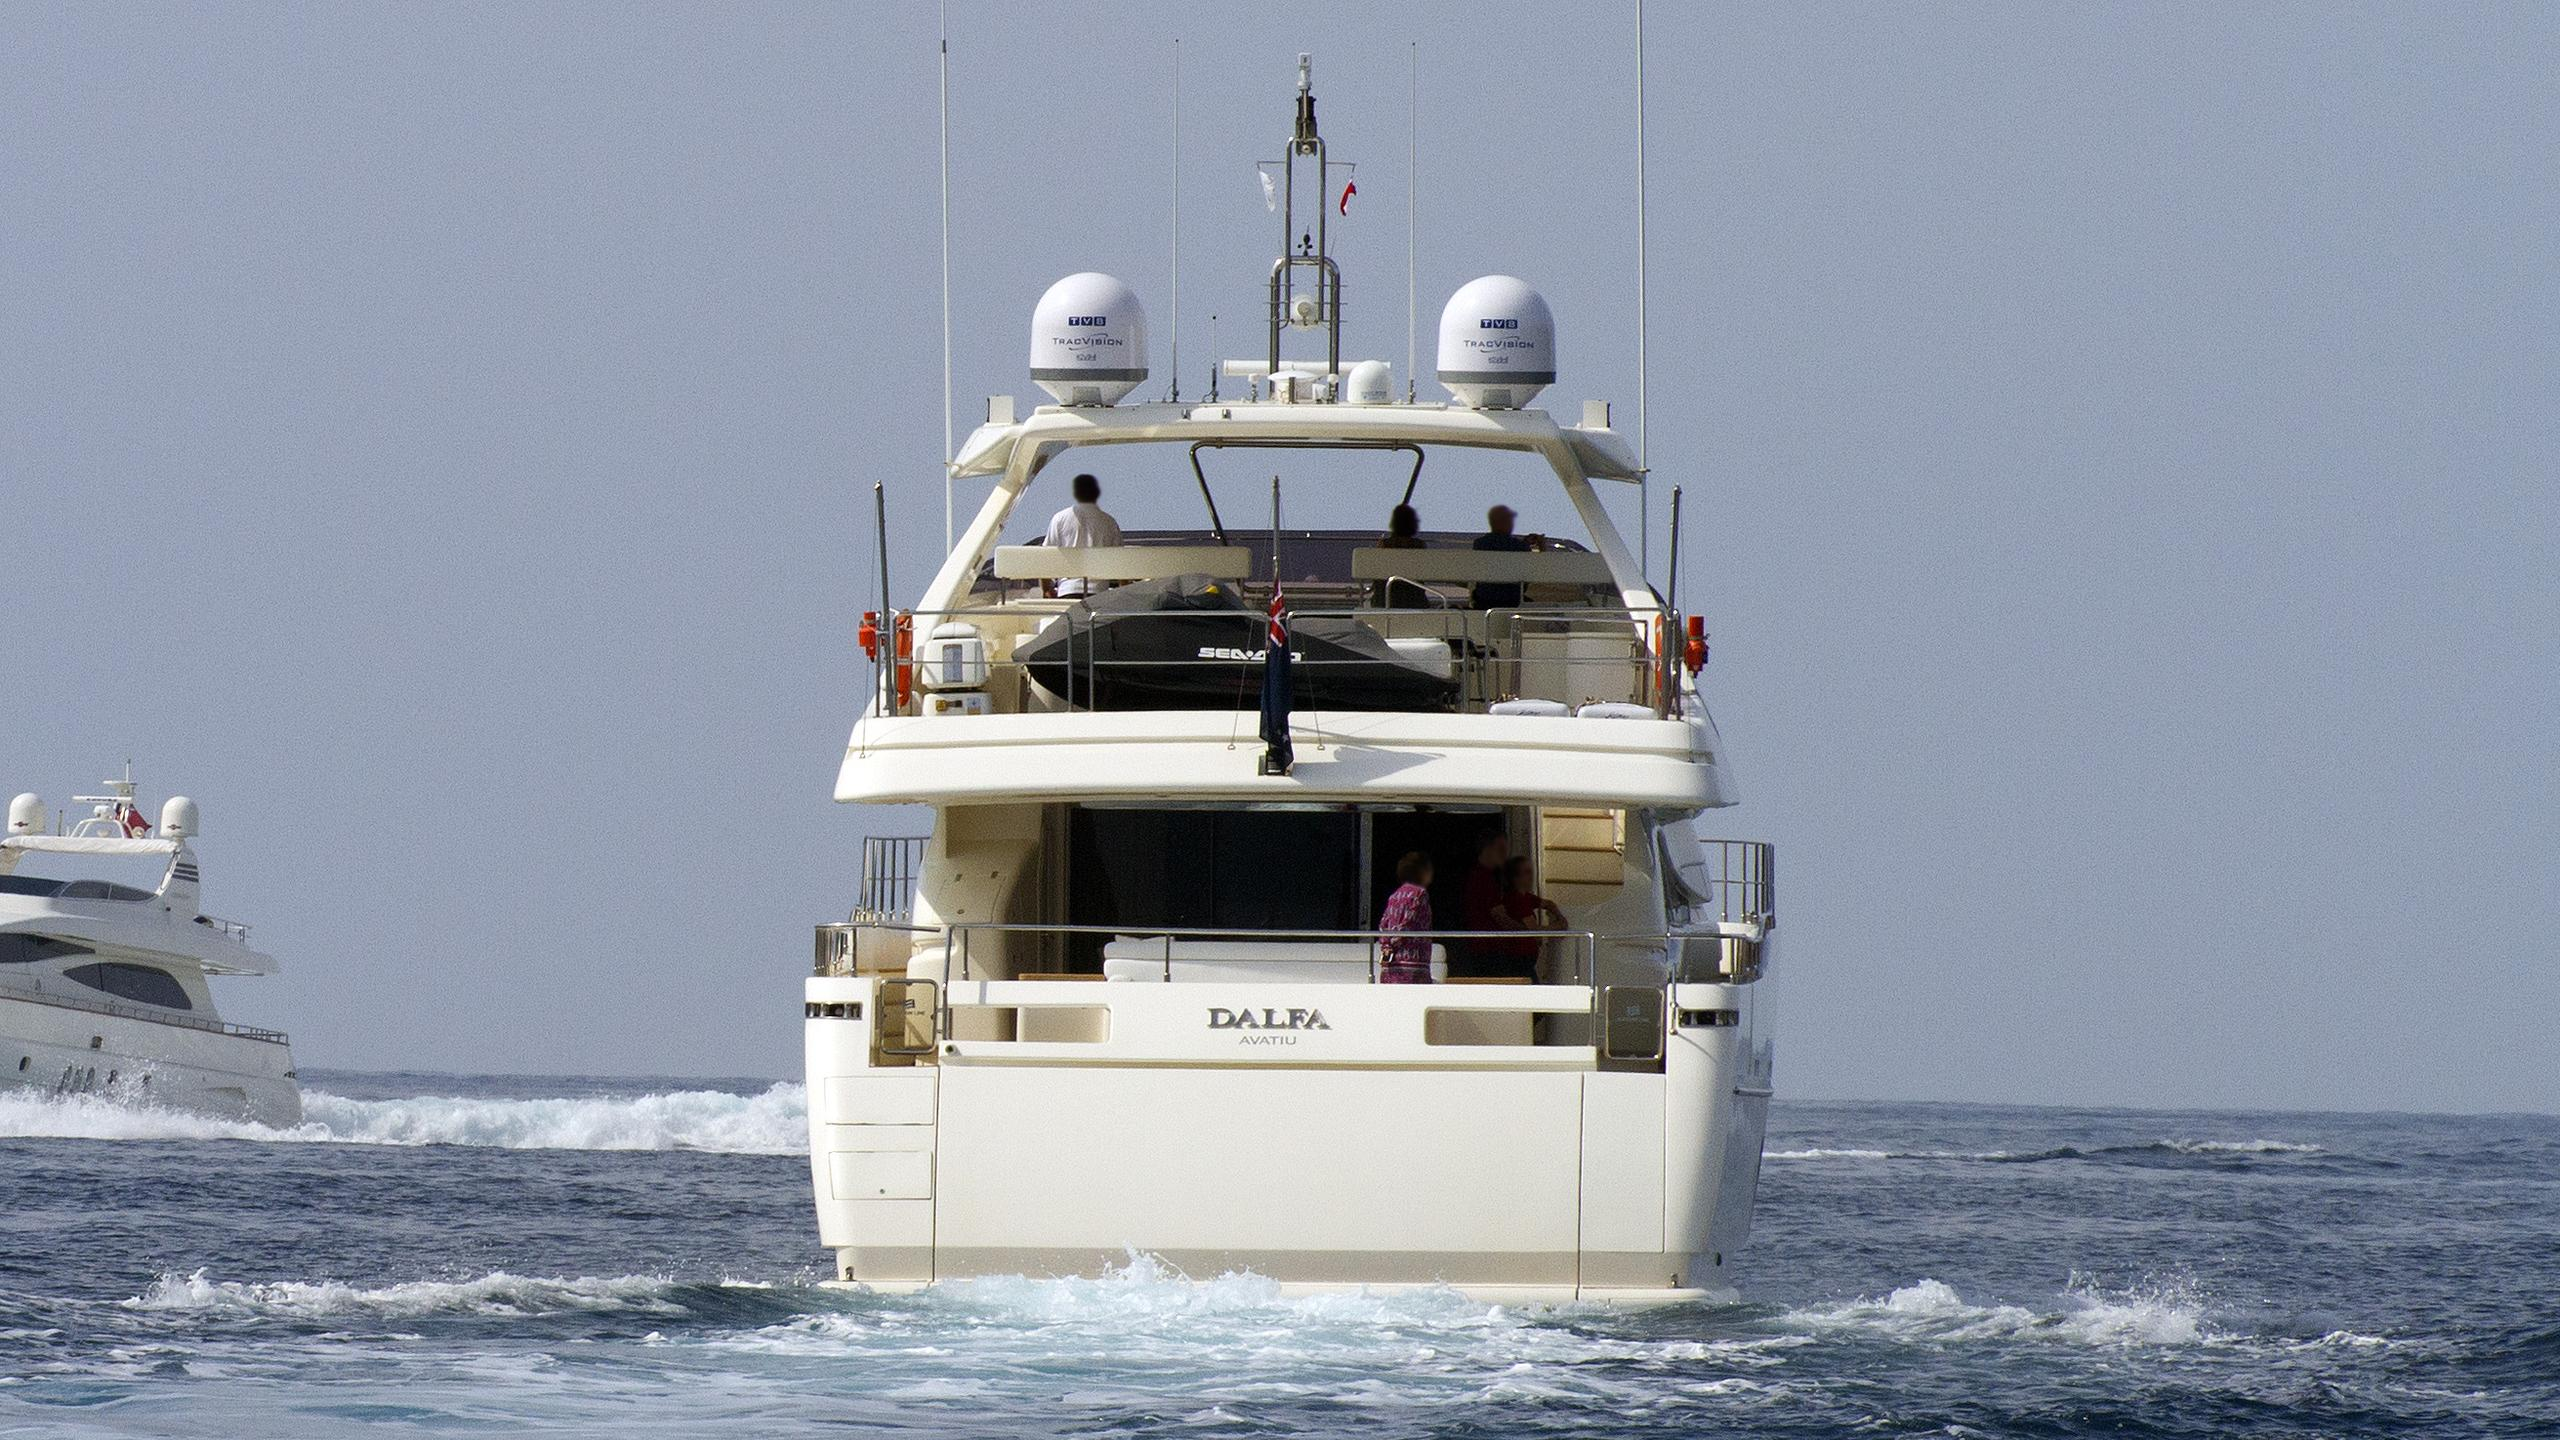 the capital dalfa motor yacht custom line 97 ferretti 2008 29m running stern